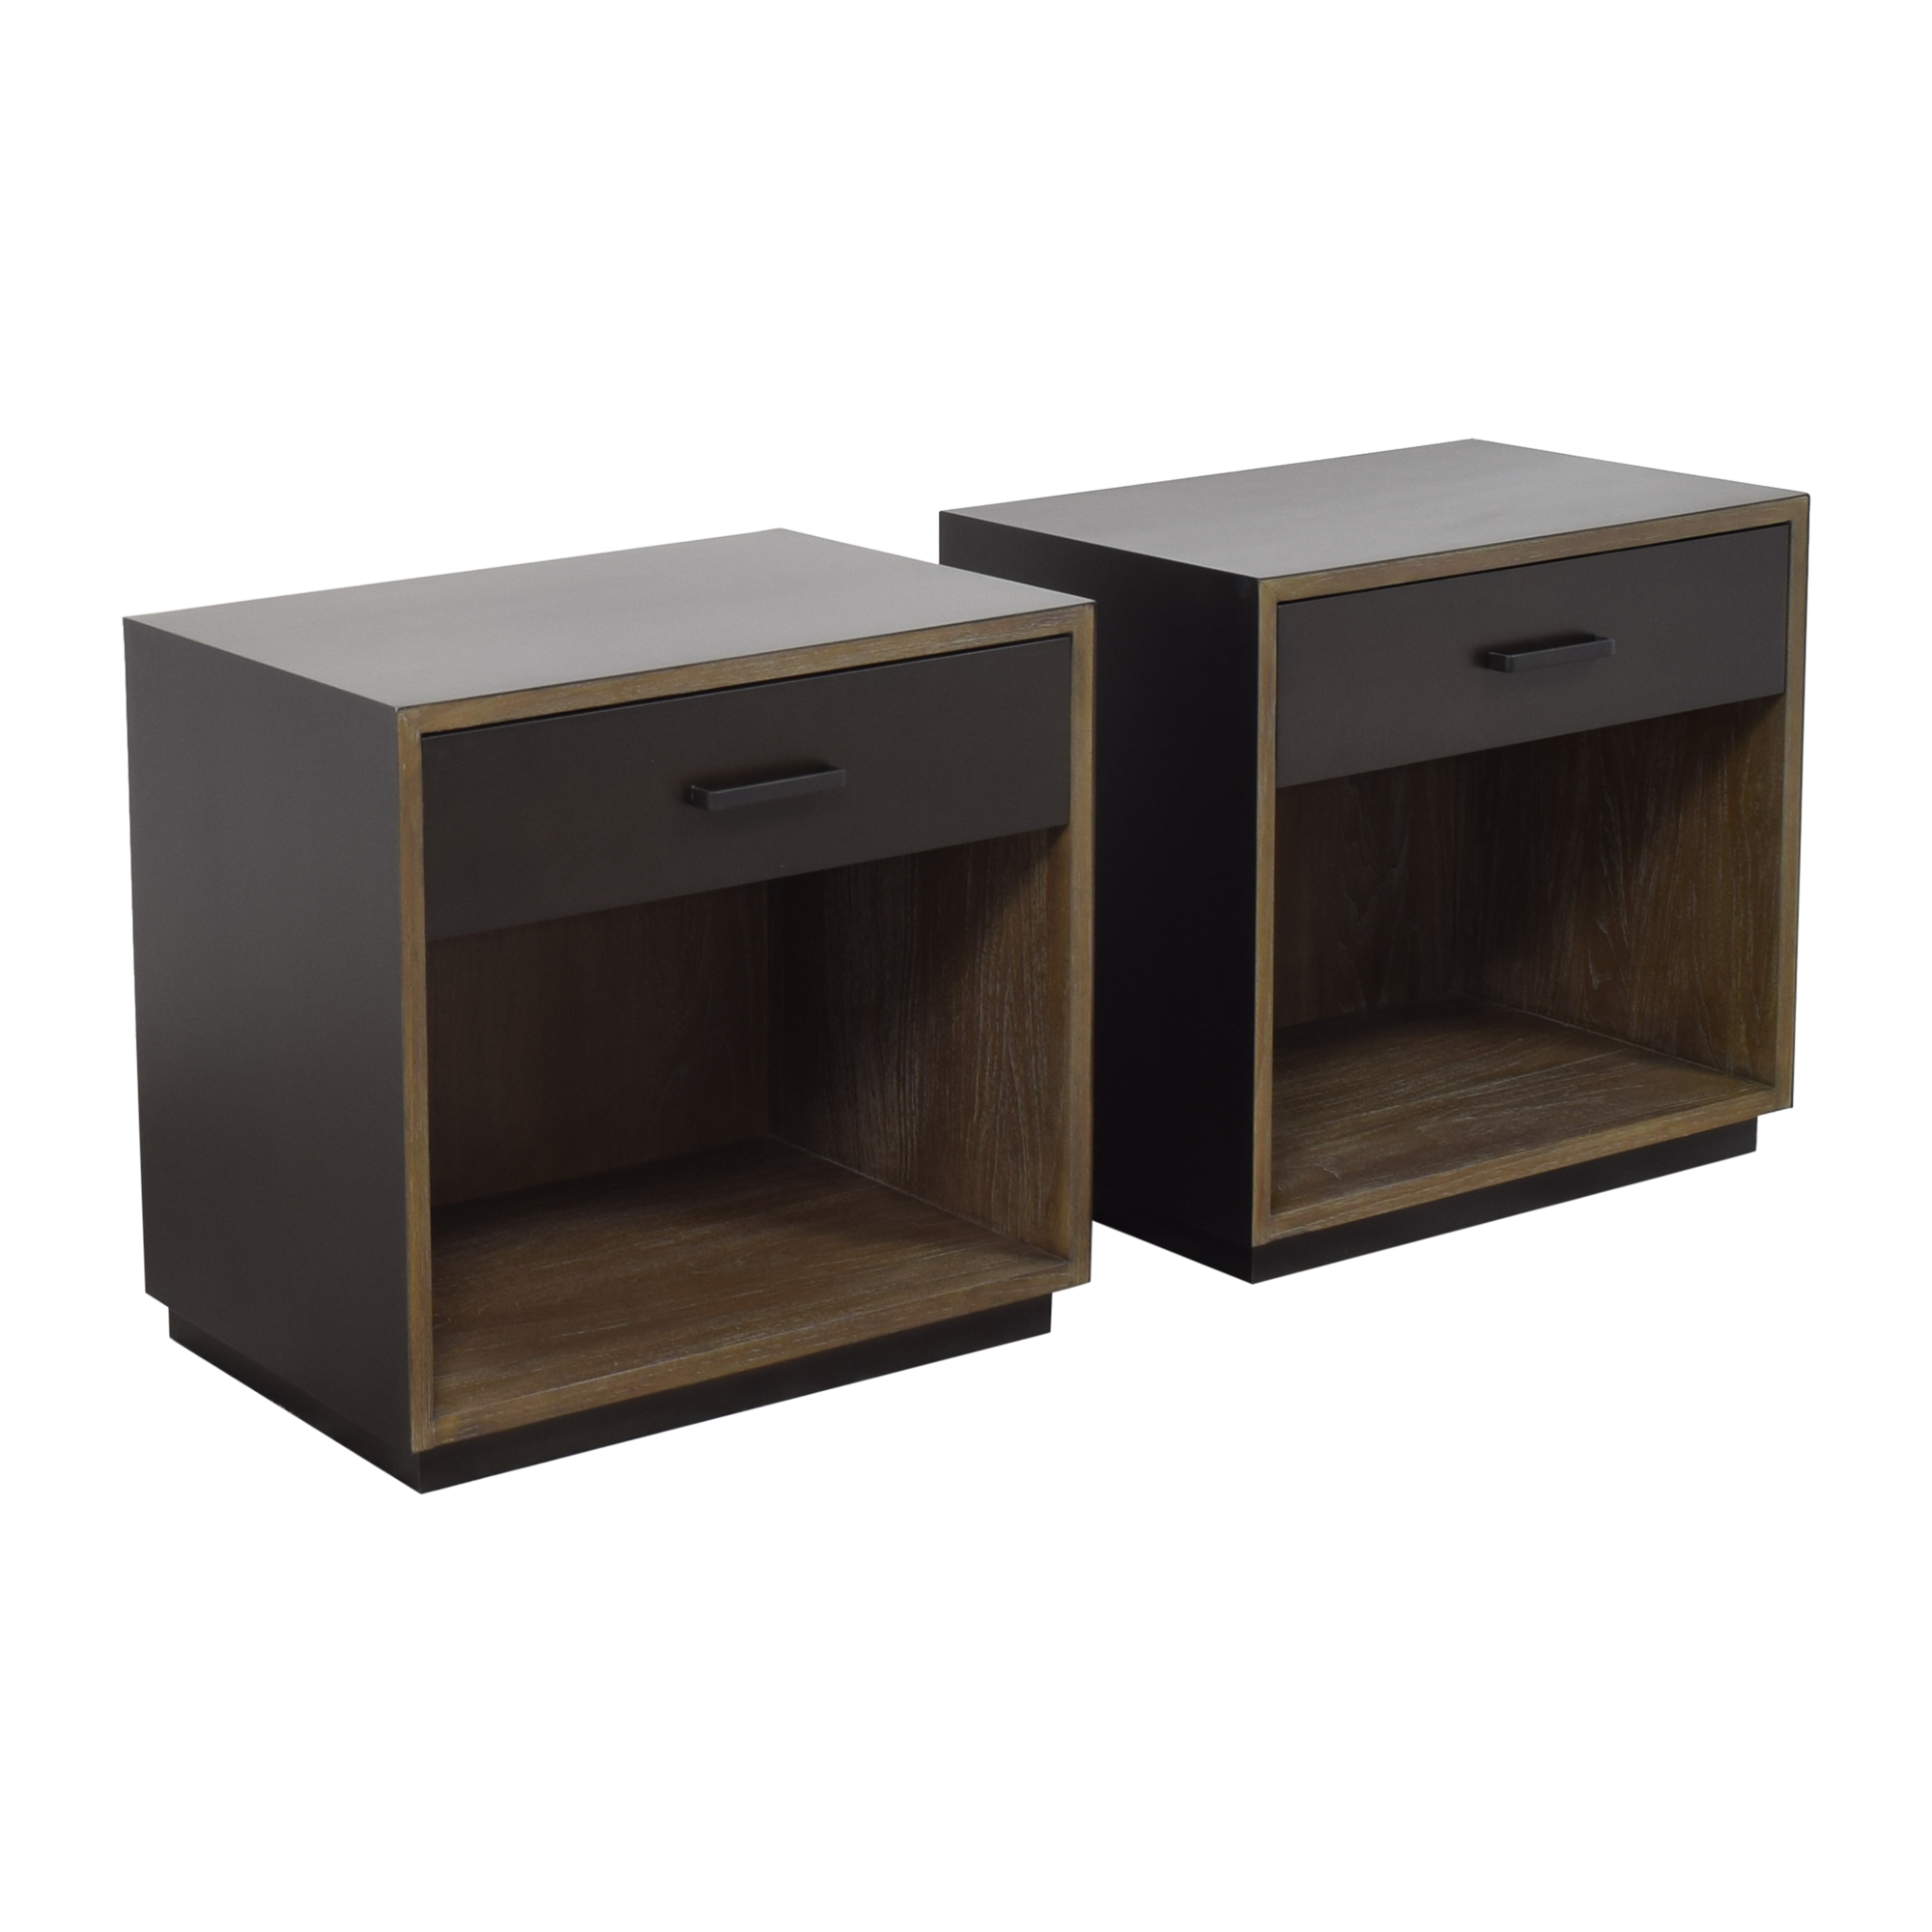 Brownstone Furniture Brownstone Furniture Baldwin Closed Nightstands ma